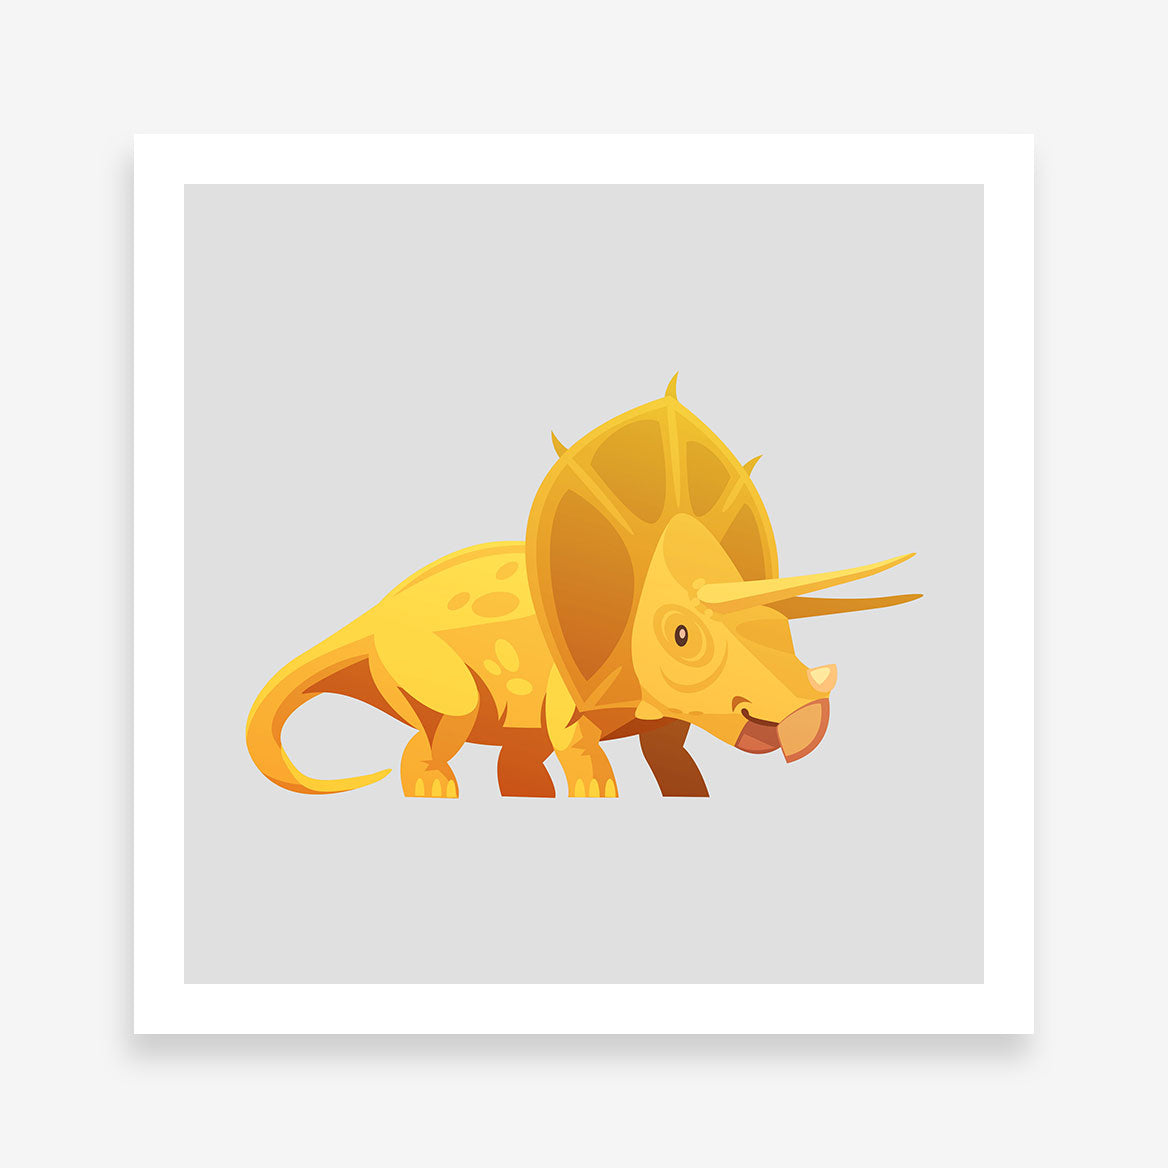 Poster print with a yellow Triceratops dinosaur and grey background